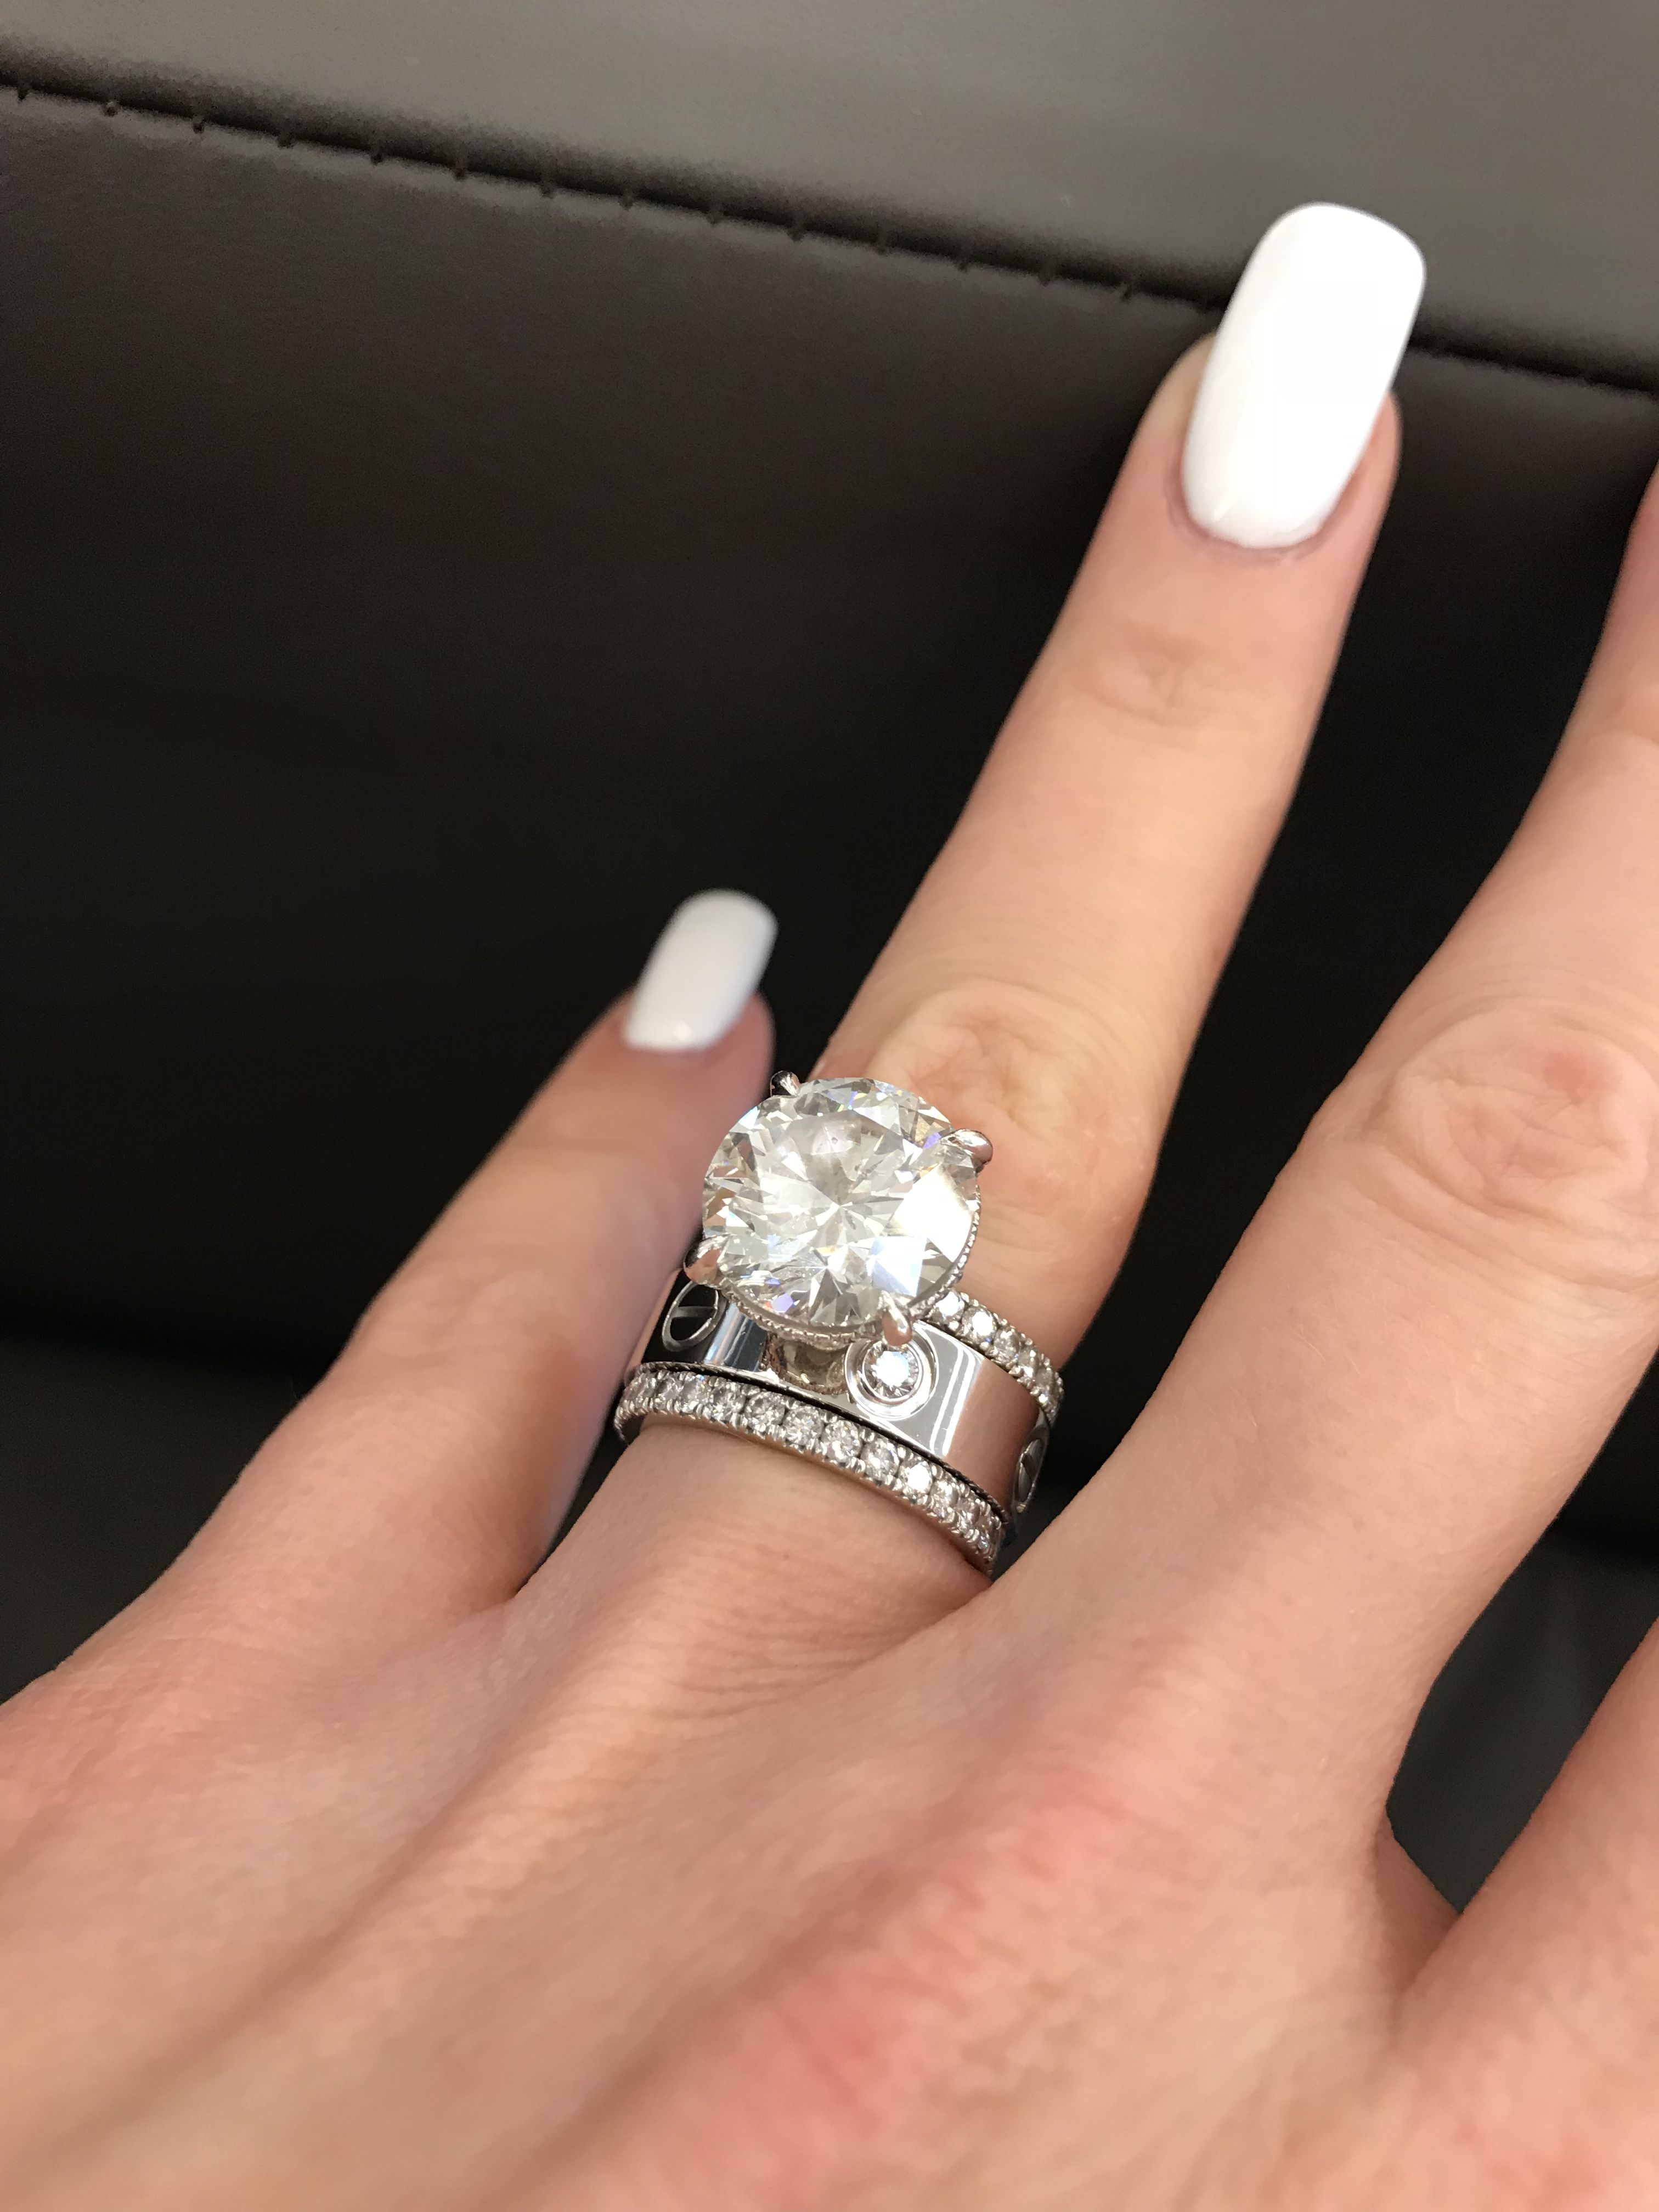 Cartier Love ring white gold with 3 diamonds | Bling in ...